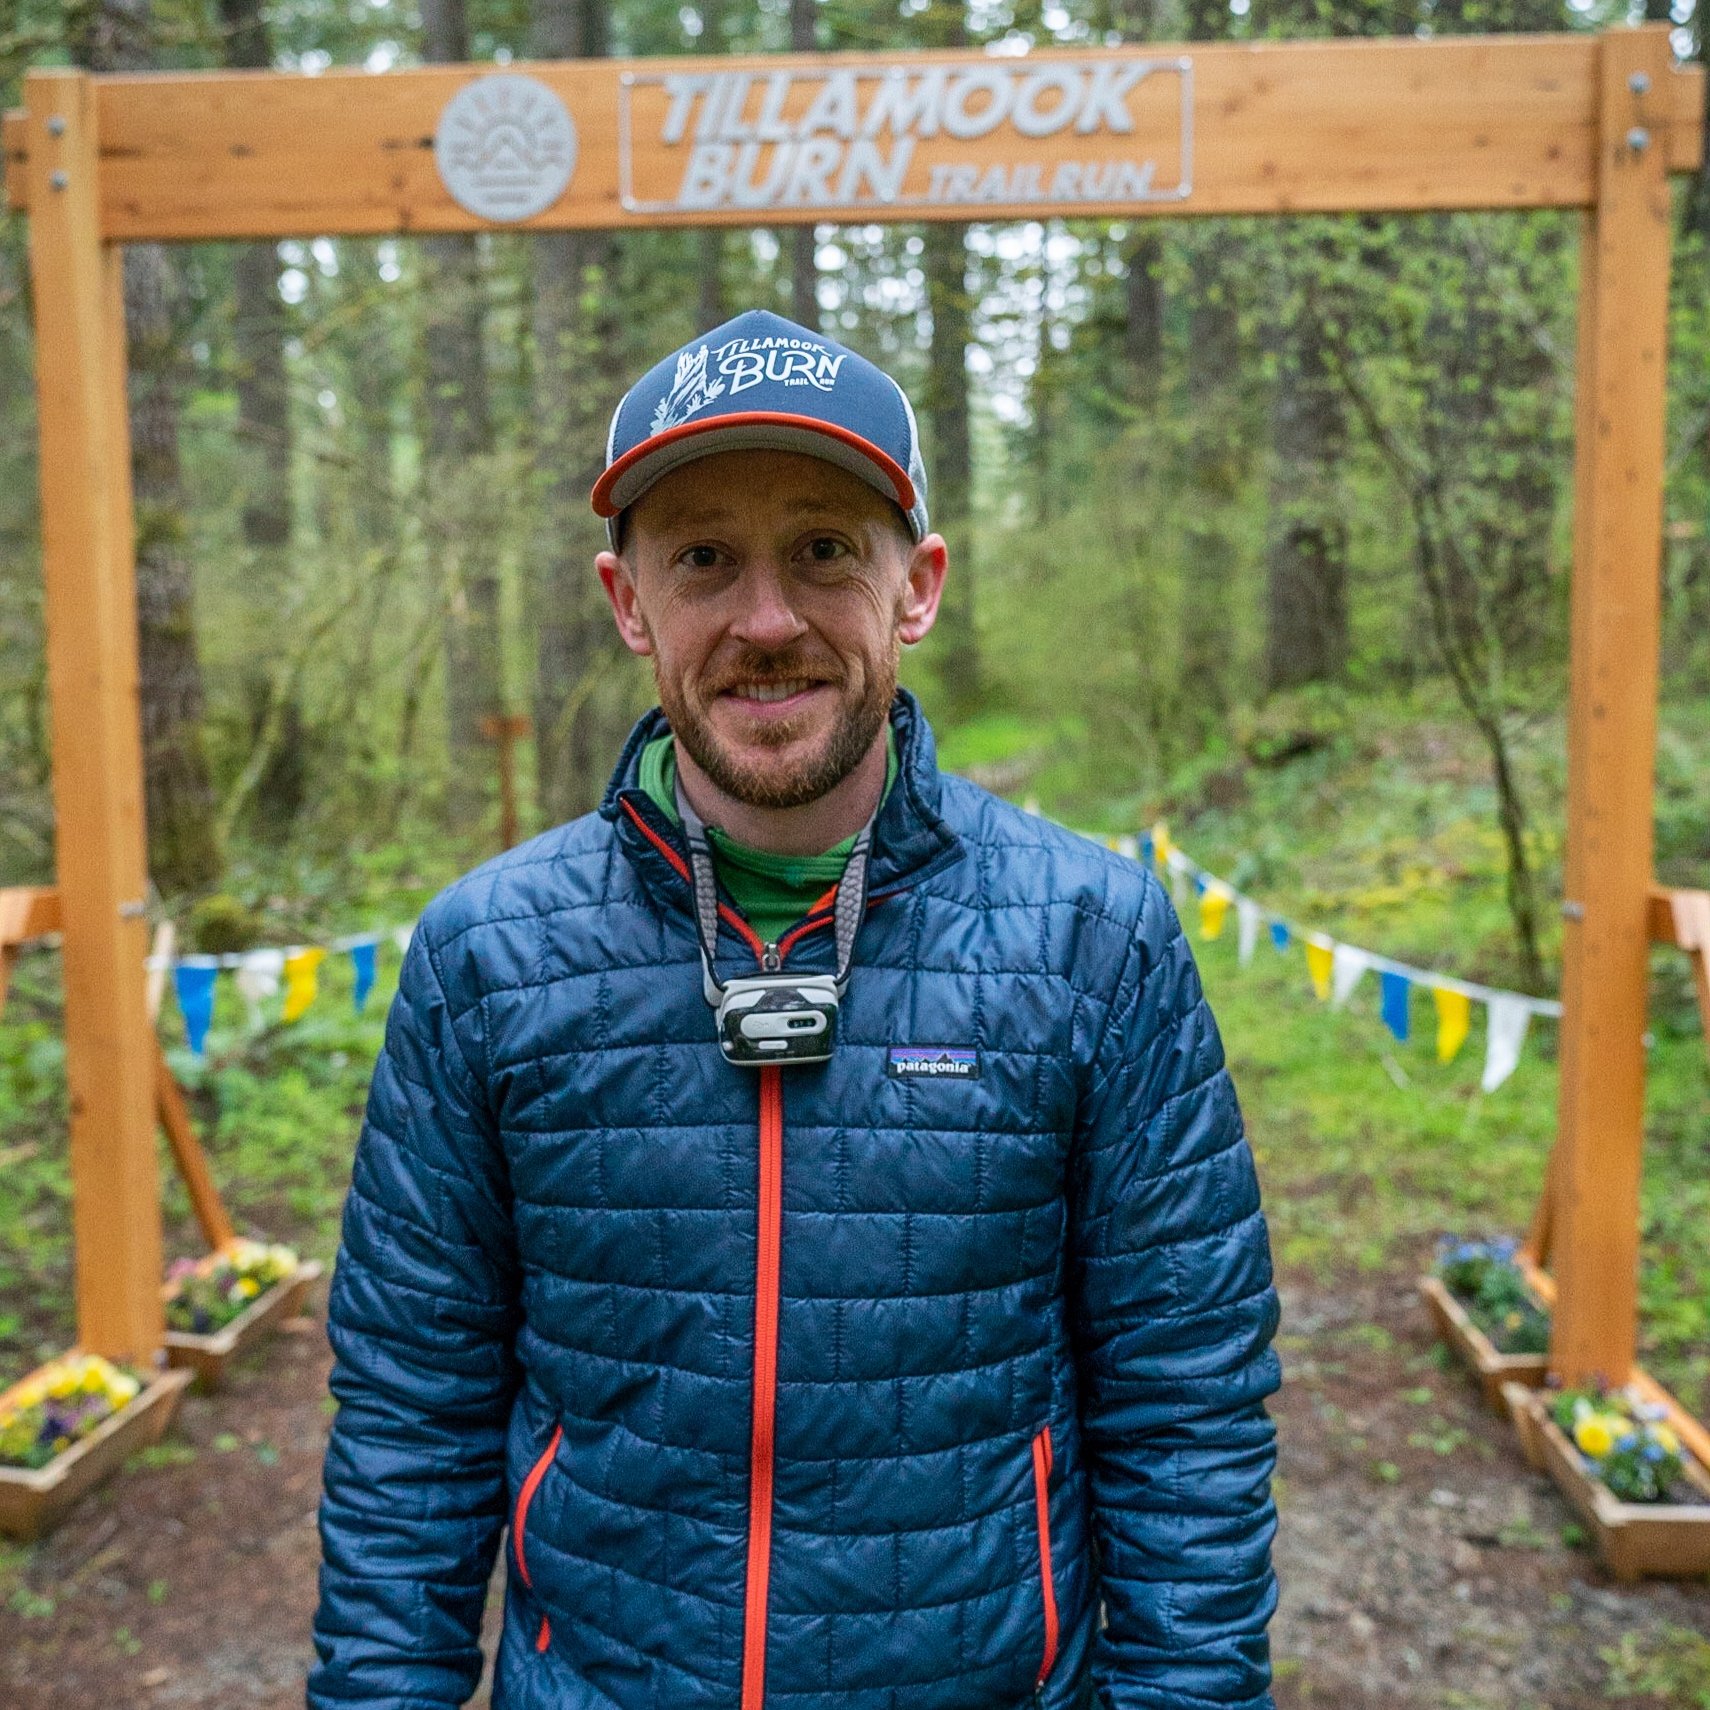 Jeremy Long - Jeremy is the Race Director and owner of Daybreak Racing. Jeremy was born and raised on the Oregon Coast and according to his parents, has been a runner since before he could walk. Jeremy has been an avid trail runner, adventurer and idea guy for over 25 years, with extensive knowledge and experience on trails throughout the Pacific NW. He also discovered some years ago that his education and career in Public Health, especially Emergency Preparedness, Environmental Health and Health Promotion translates quite well to Race Directing.He currently resides in Hillsboro, Oregon with his wife and two kids. When he's not with his family, working or running, Jeremy aspires to make the perfect cup of coffee, home brew batches of ale and volunteer out on the trails.